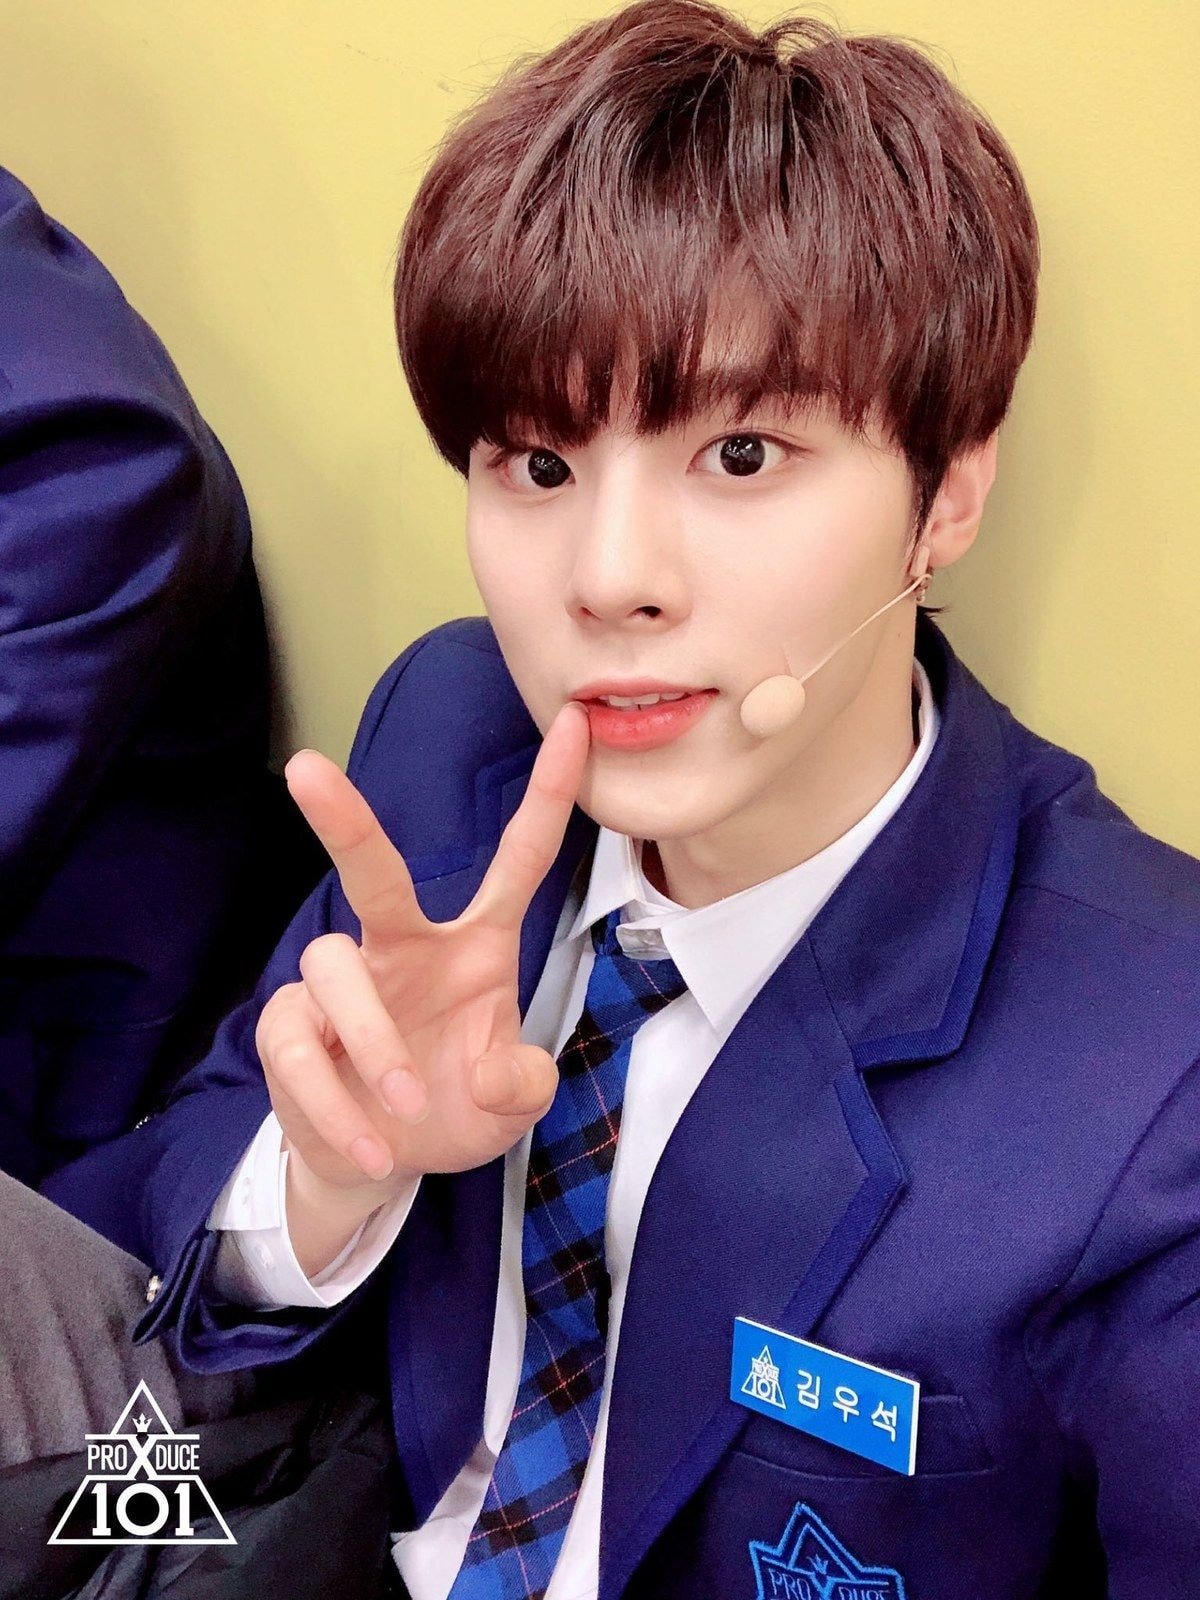 Image result for kim woo seok produce x 101